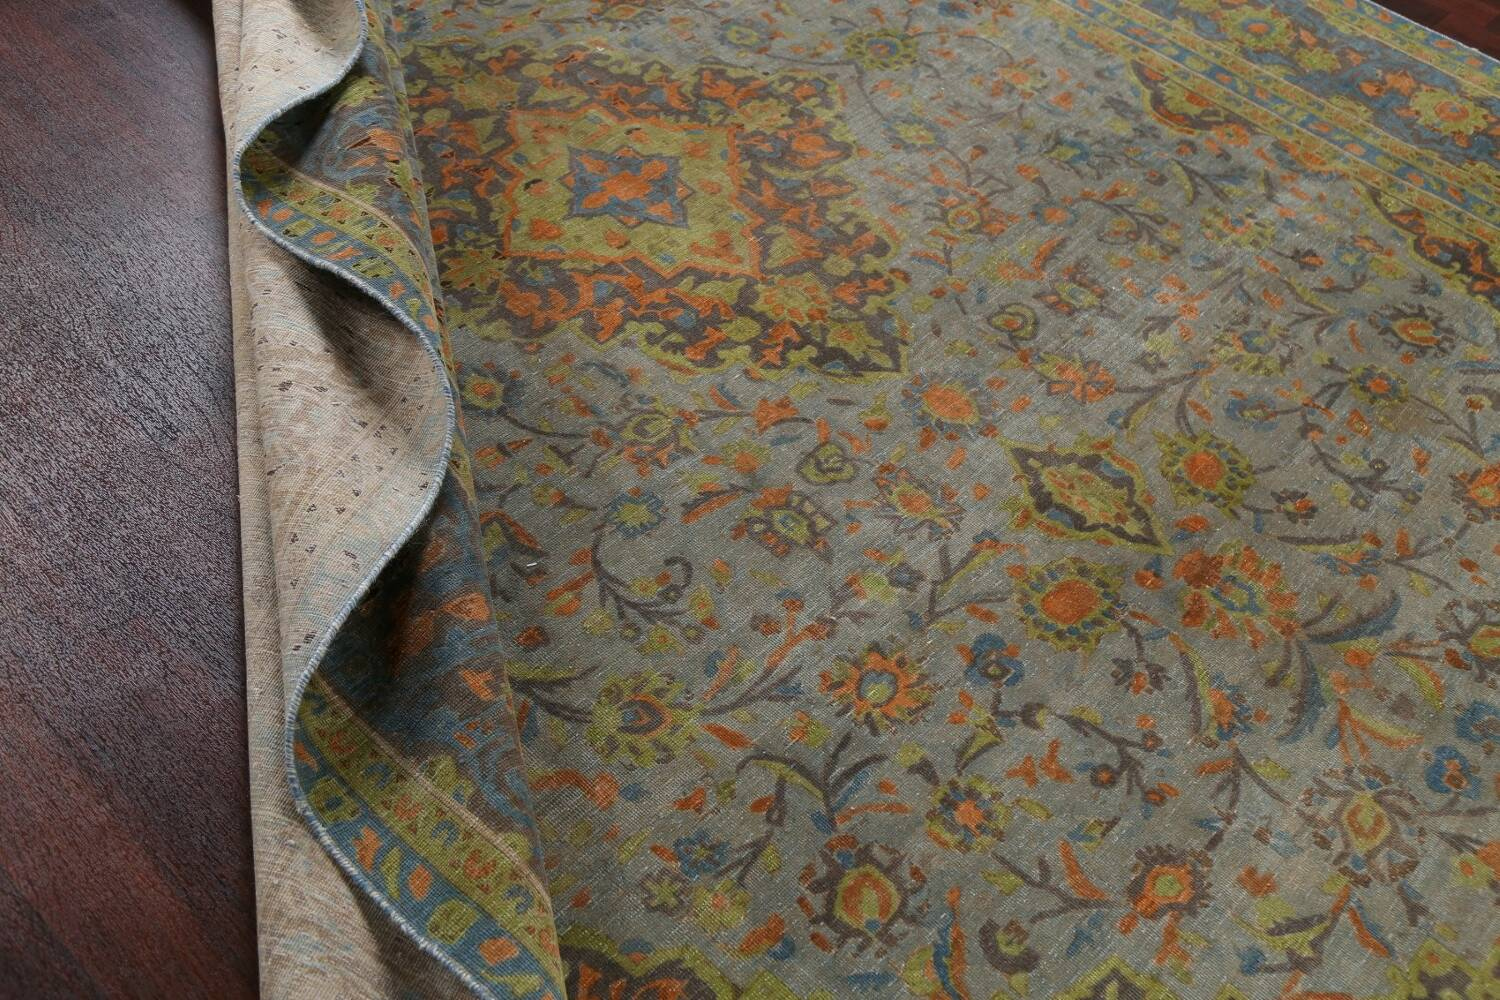 Distressed Over-Dye Kashan Persian Area Rug 9x12 image 18